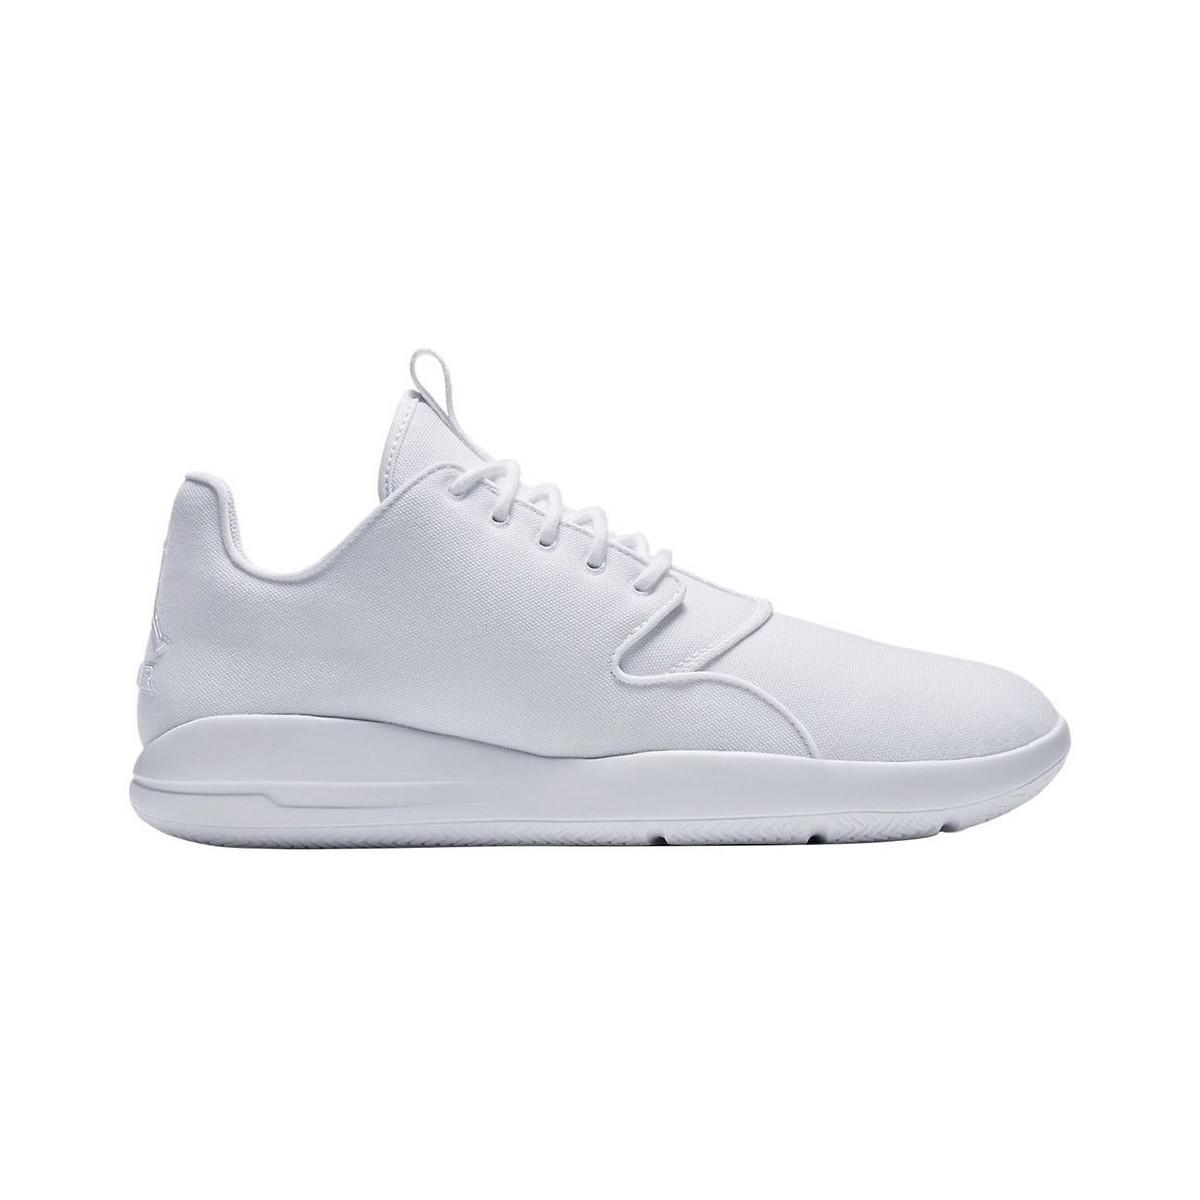 quality design 4f9b1 871d6 Nike Jordan Eclipse Men s Shoes (trainers) In Multicolour in White ...